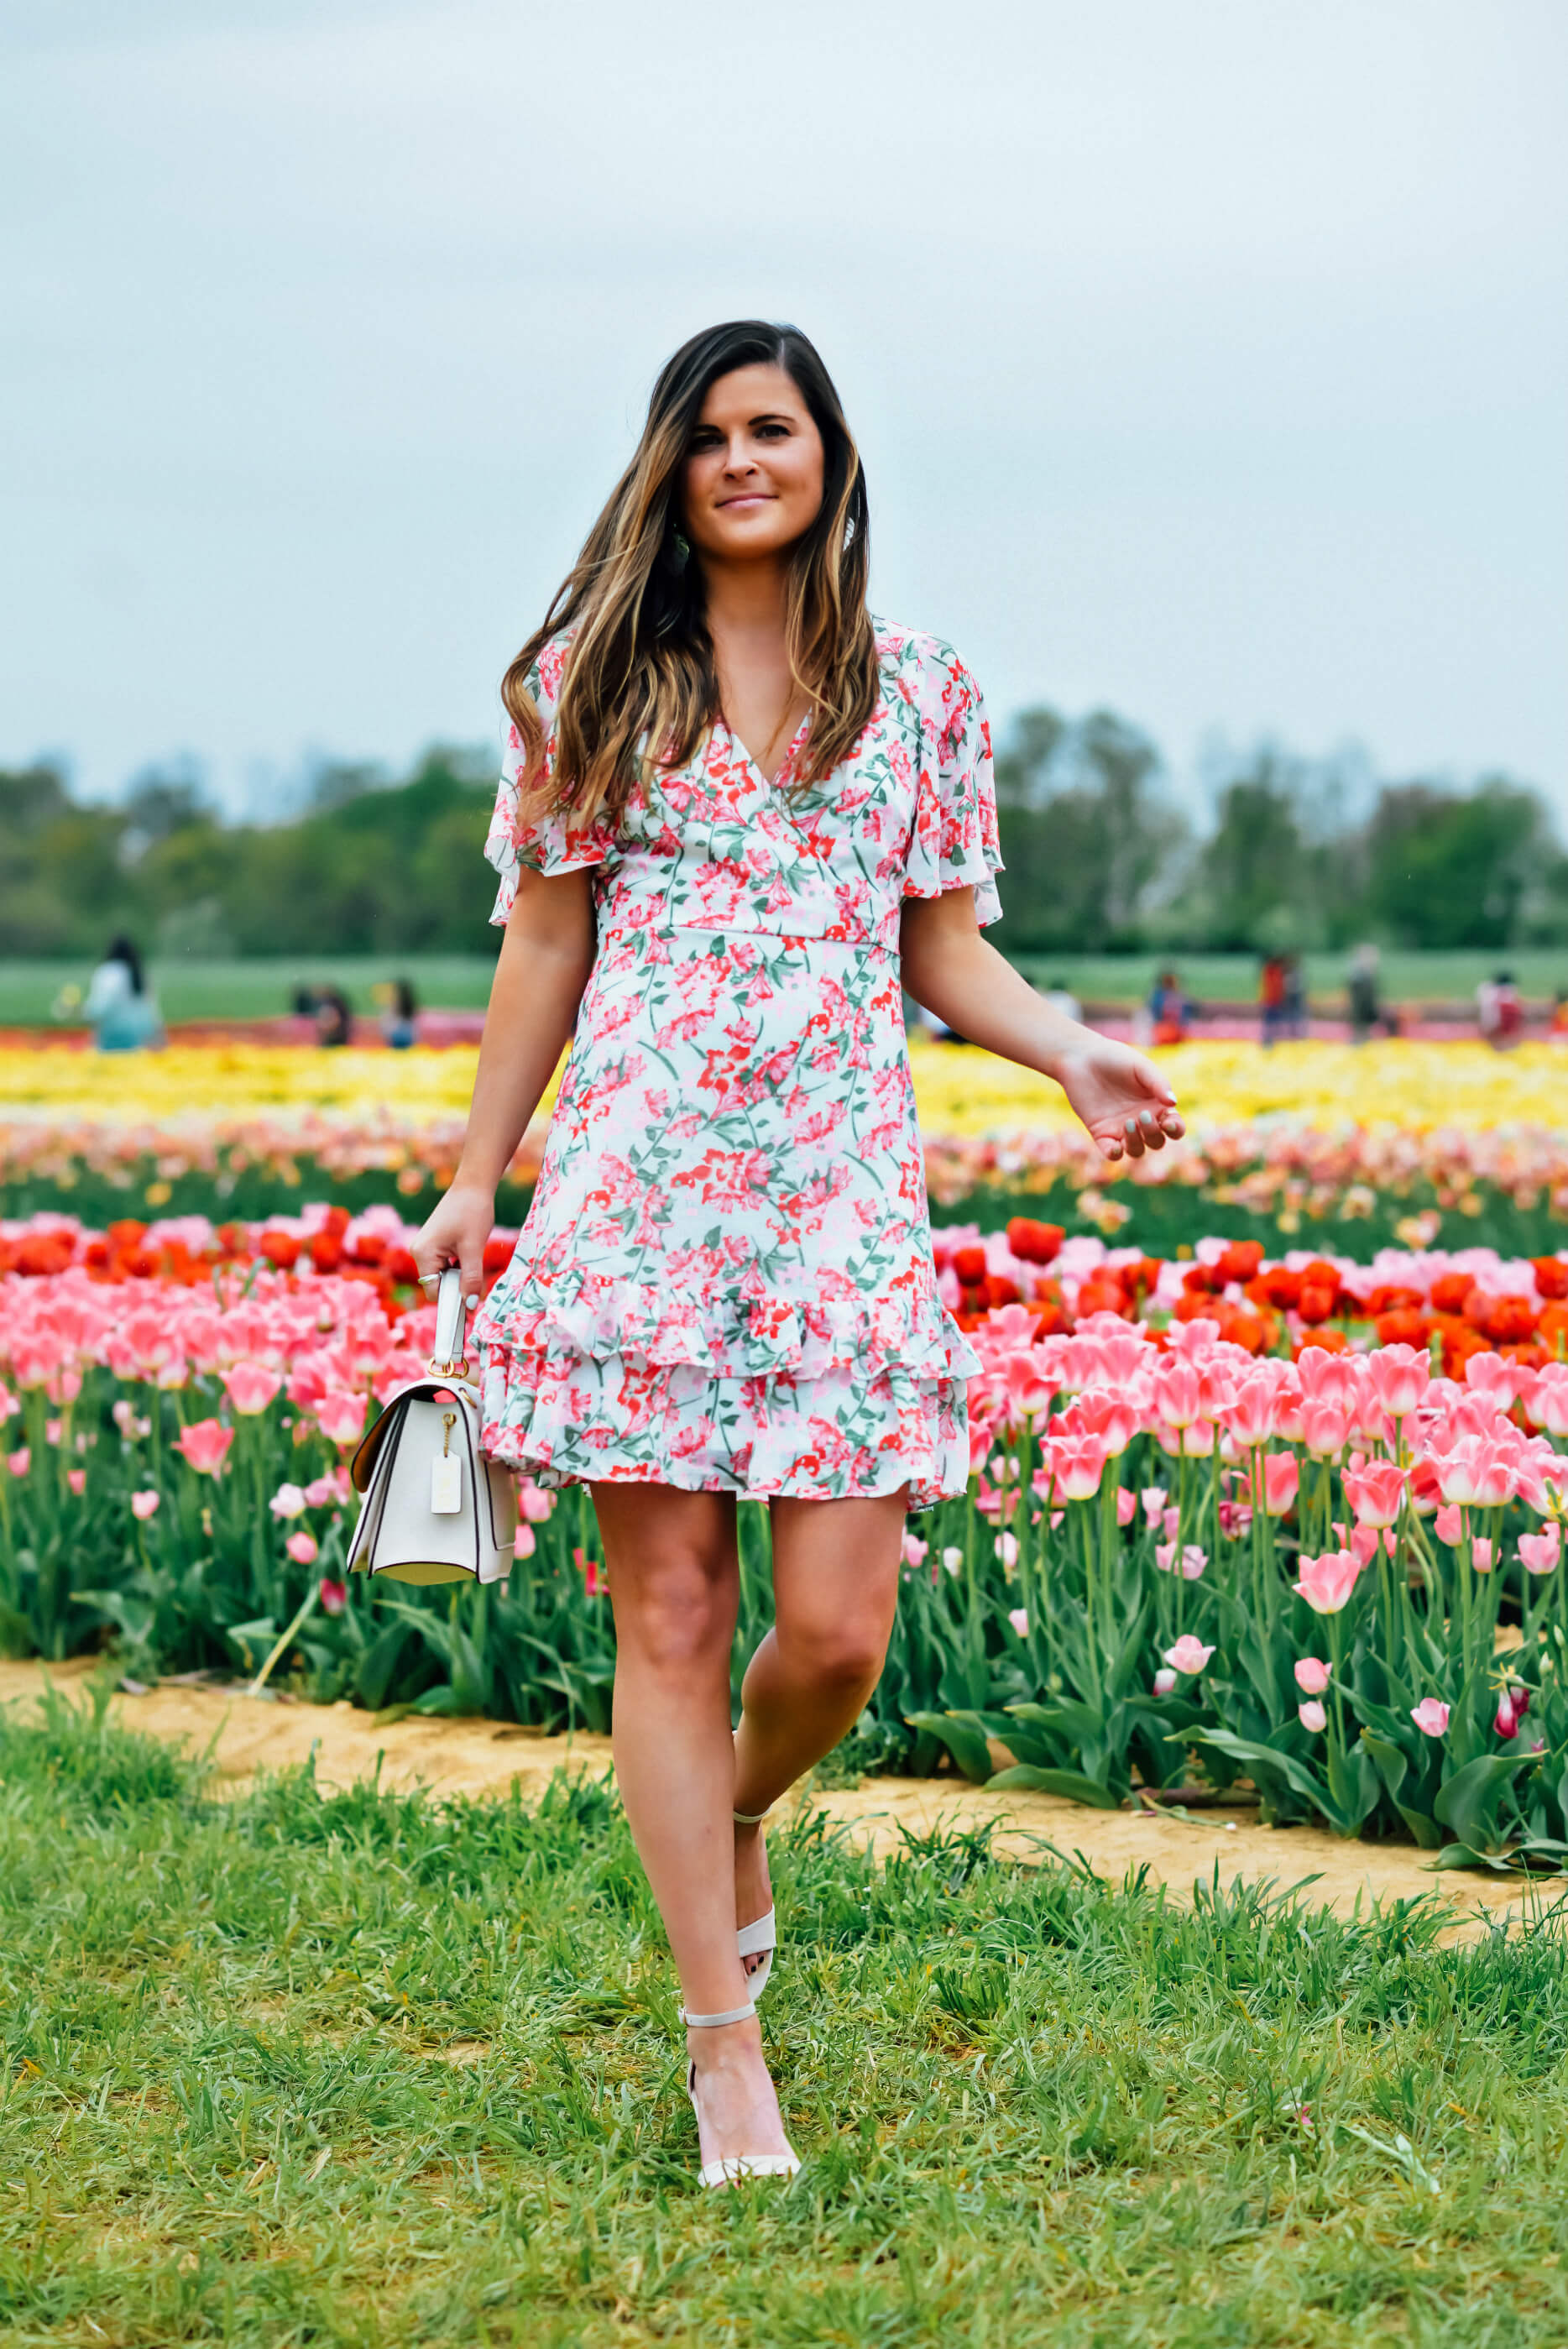 LULUS GLORIOUS WHITE AND LIGHT PINK FLORAL PRINT RUFFLED MINI DRESS, garden party dress, spring party dress, spring floral print dress,  Holland Ridge Farm Tulip Festival, Tilden of To Be Bright